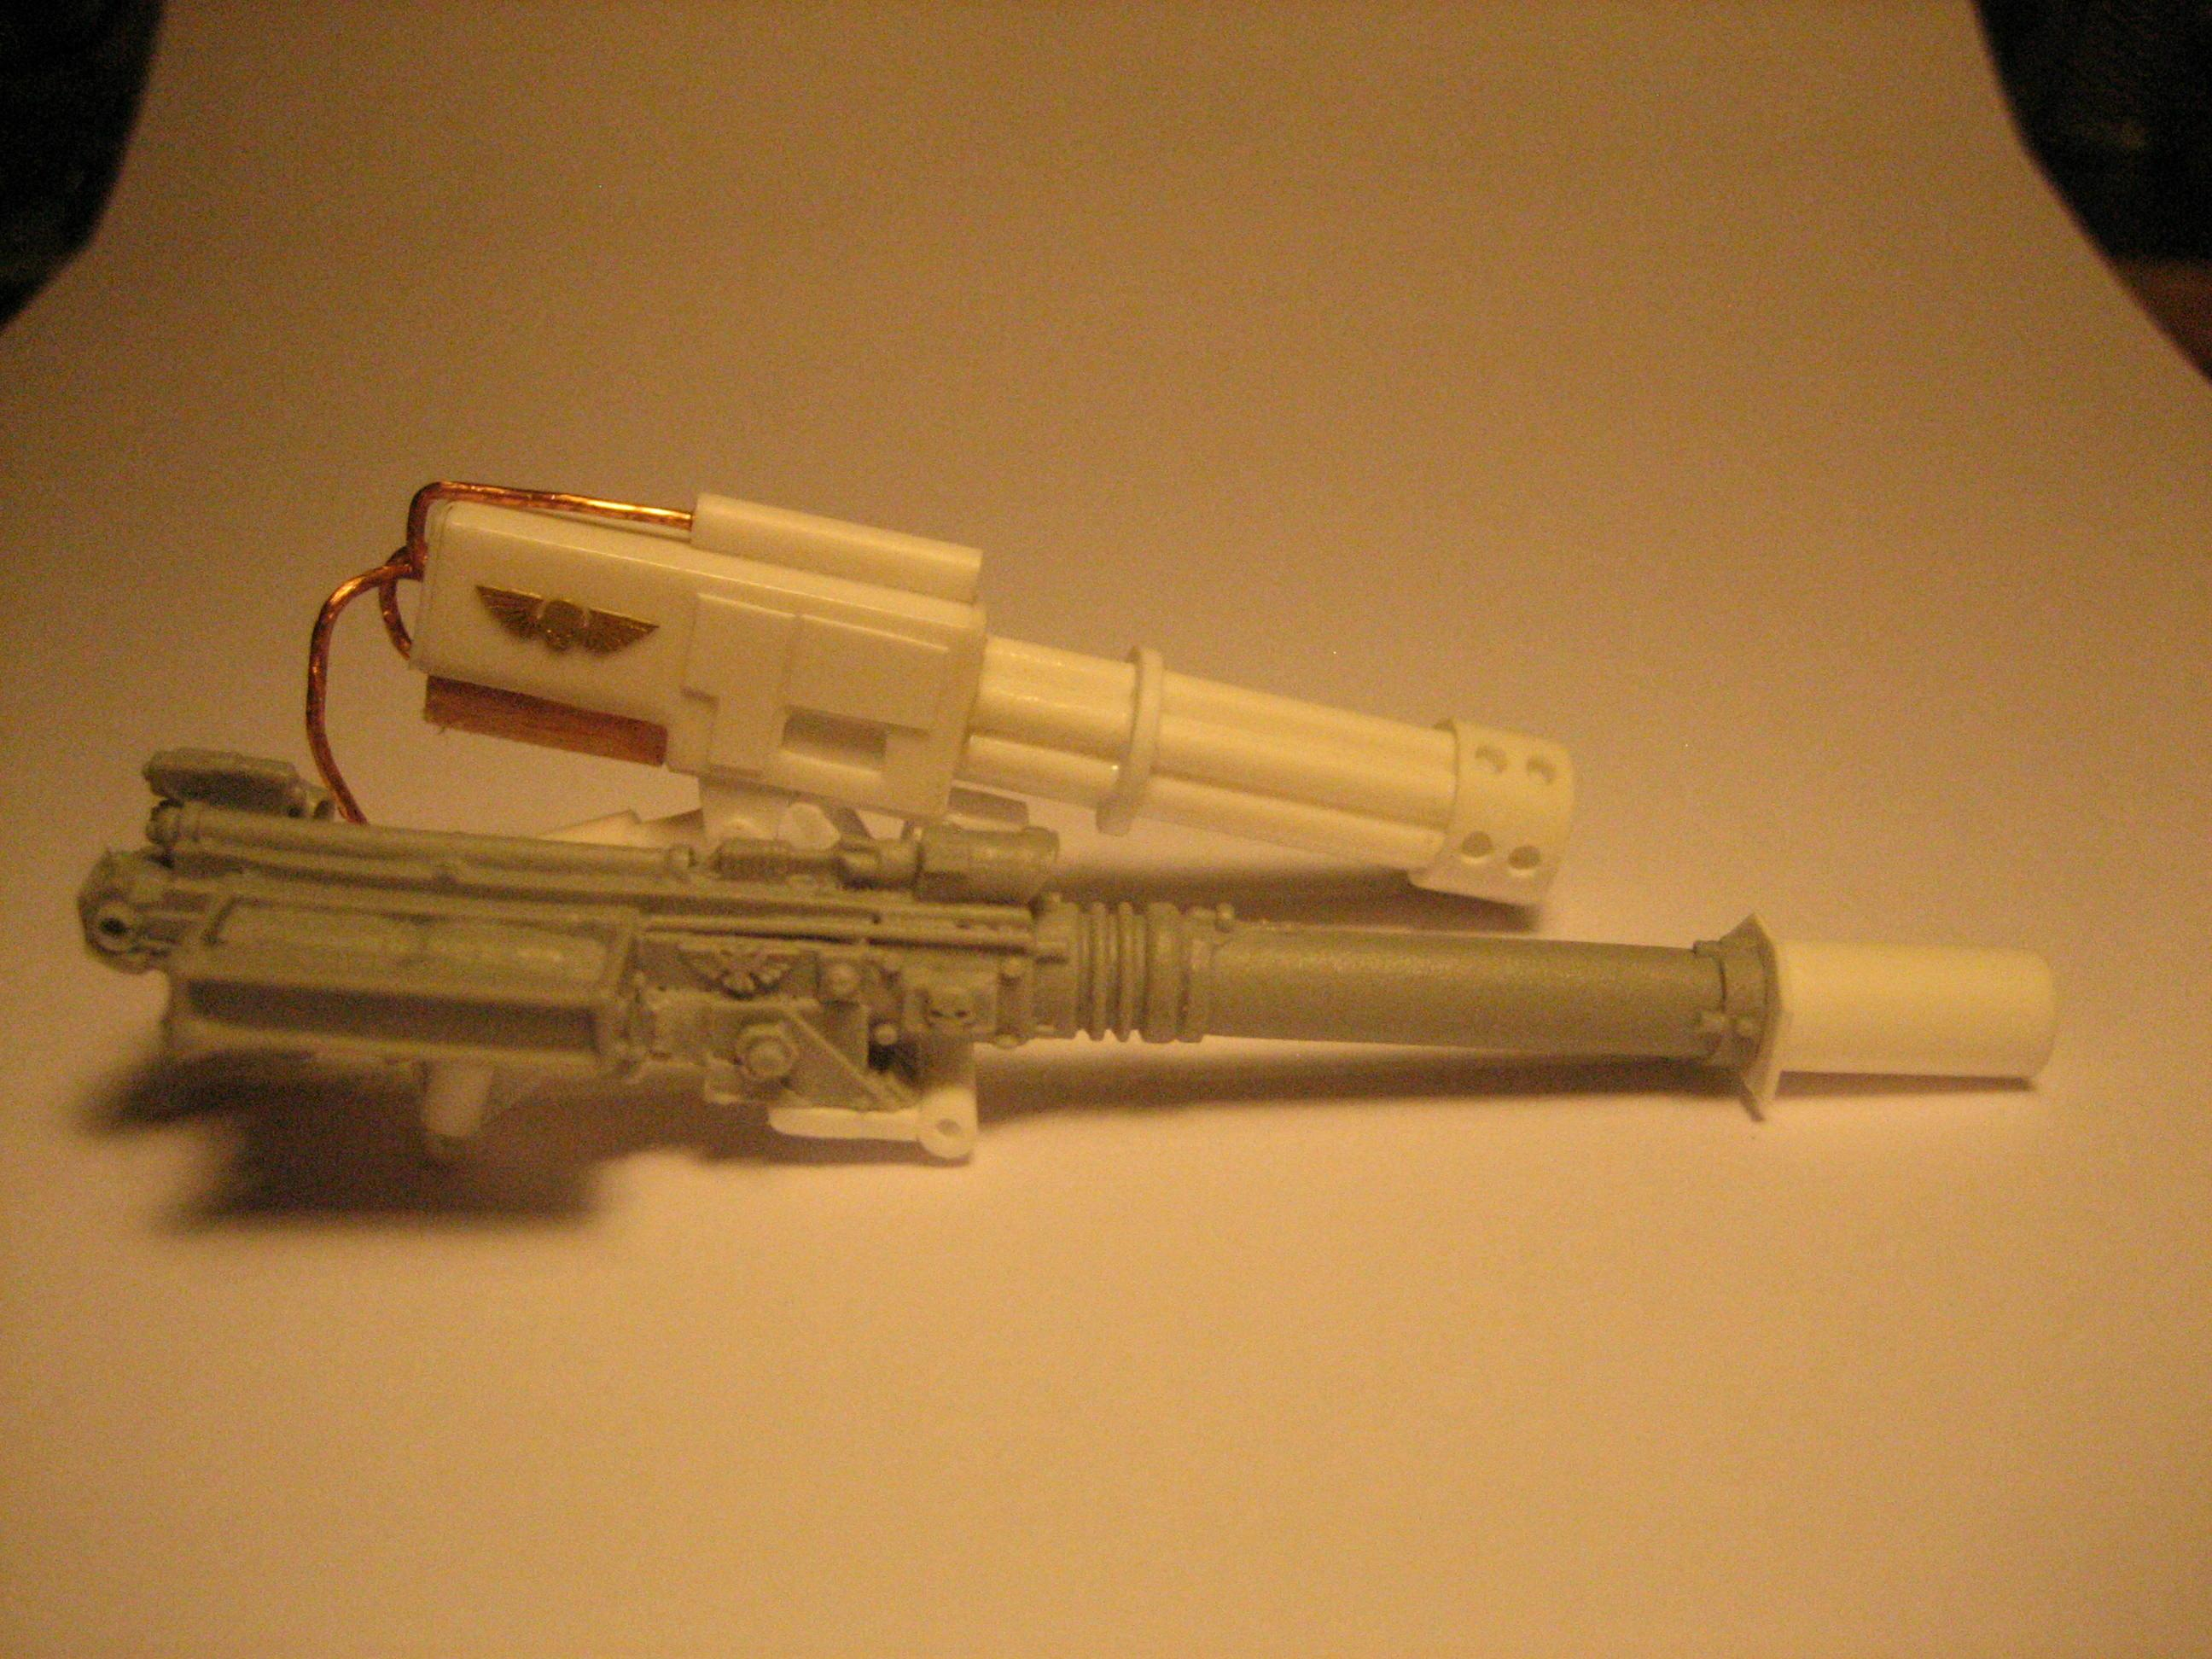 Shortened barrels of the Punisher compared to the lengthened barrel of the Autocannon